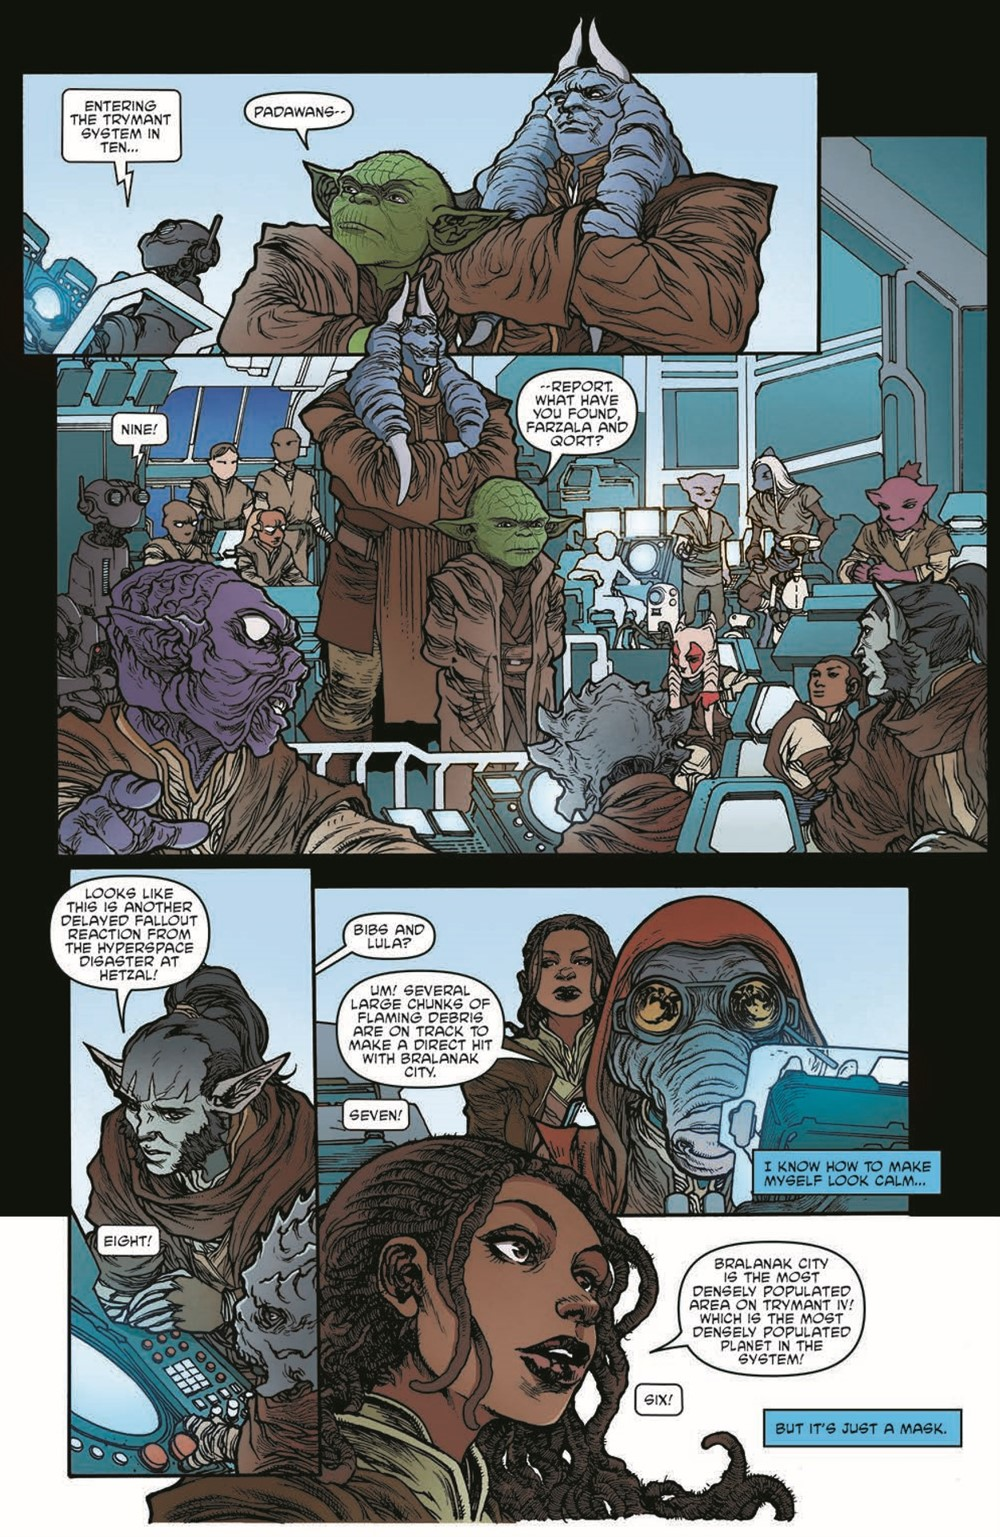 SWAHRA01-pr-6 ComicList Previews: STAR WARS THE HIGH REPUBLIC ADVENTURES #1